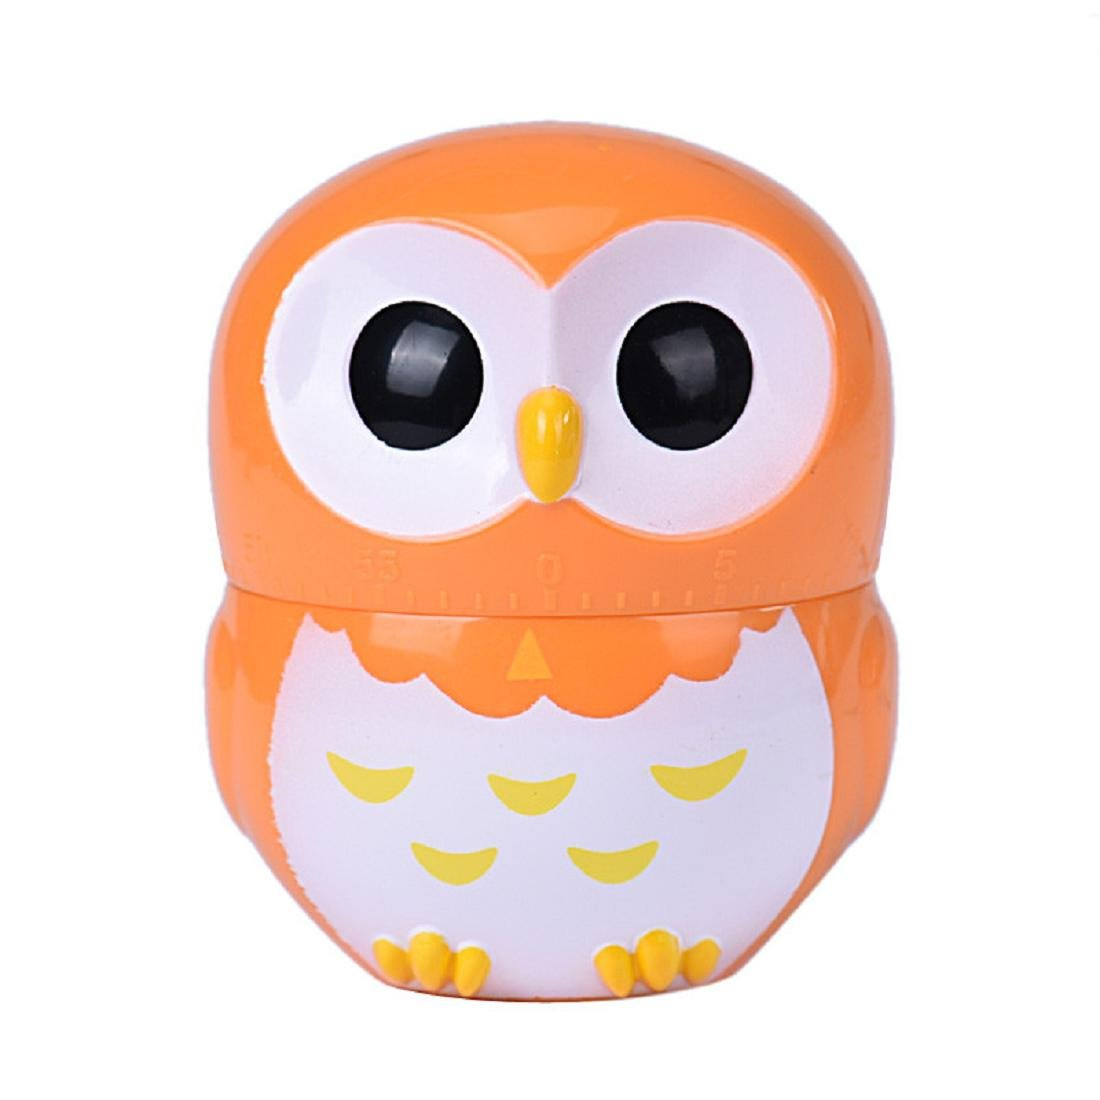 Coromose Owl Timer Kitchen 60 Minute Cooking Mechanical Home Decoration (Orange)